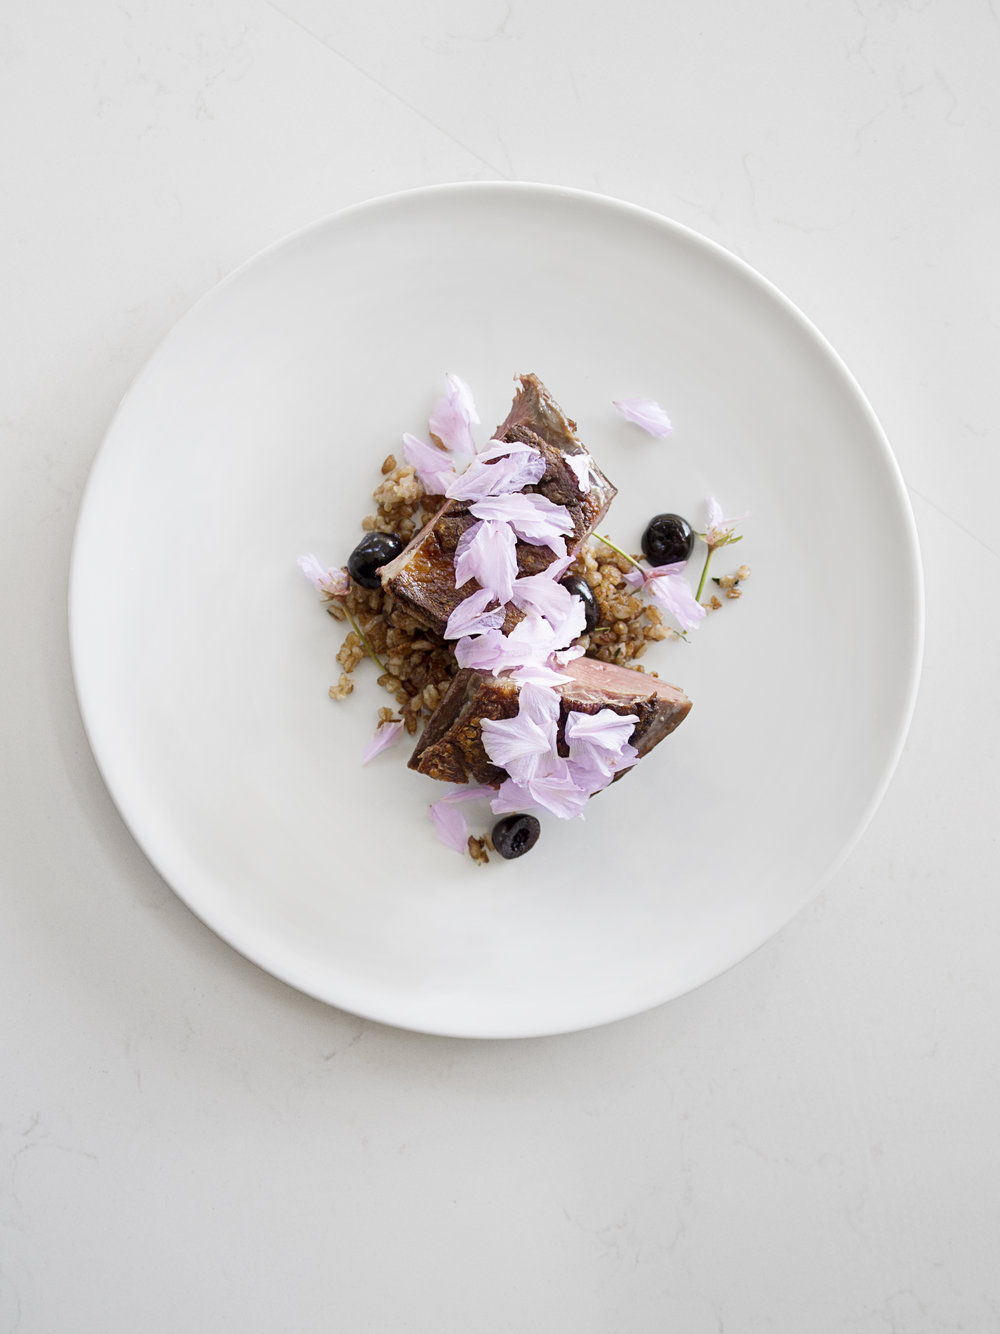 Magret Duck with foraged cherry blossoms and cracked wheat.